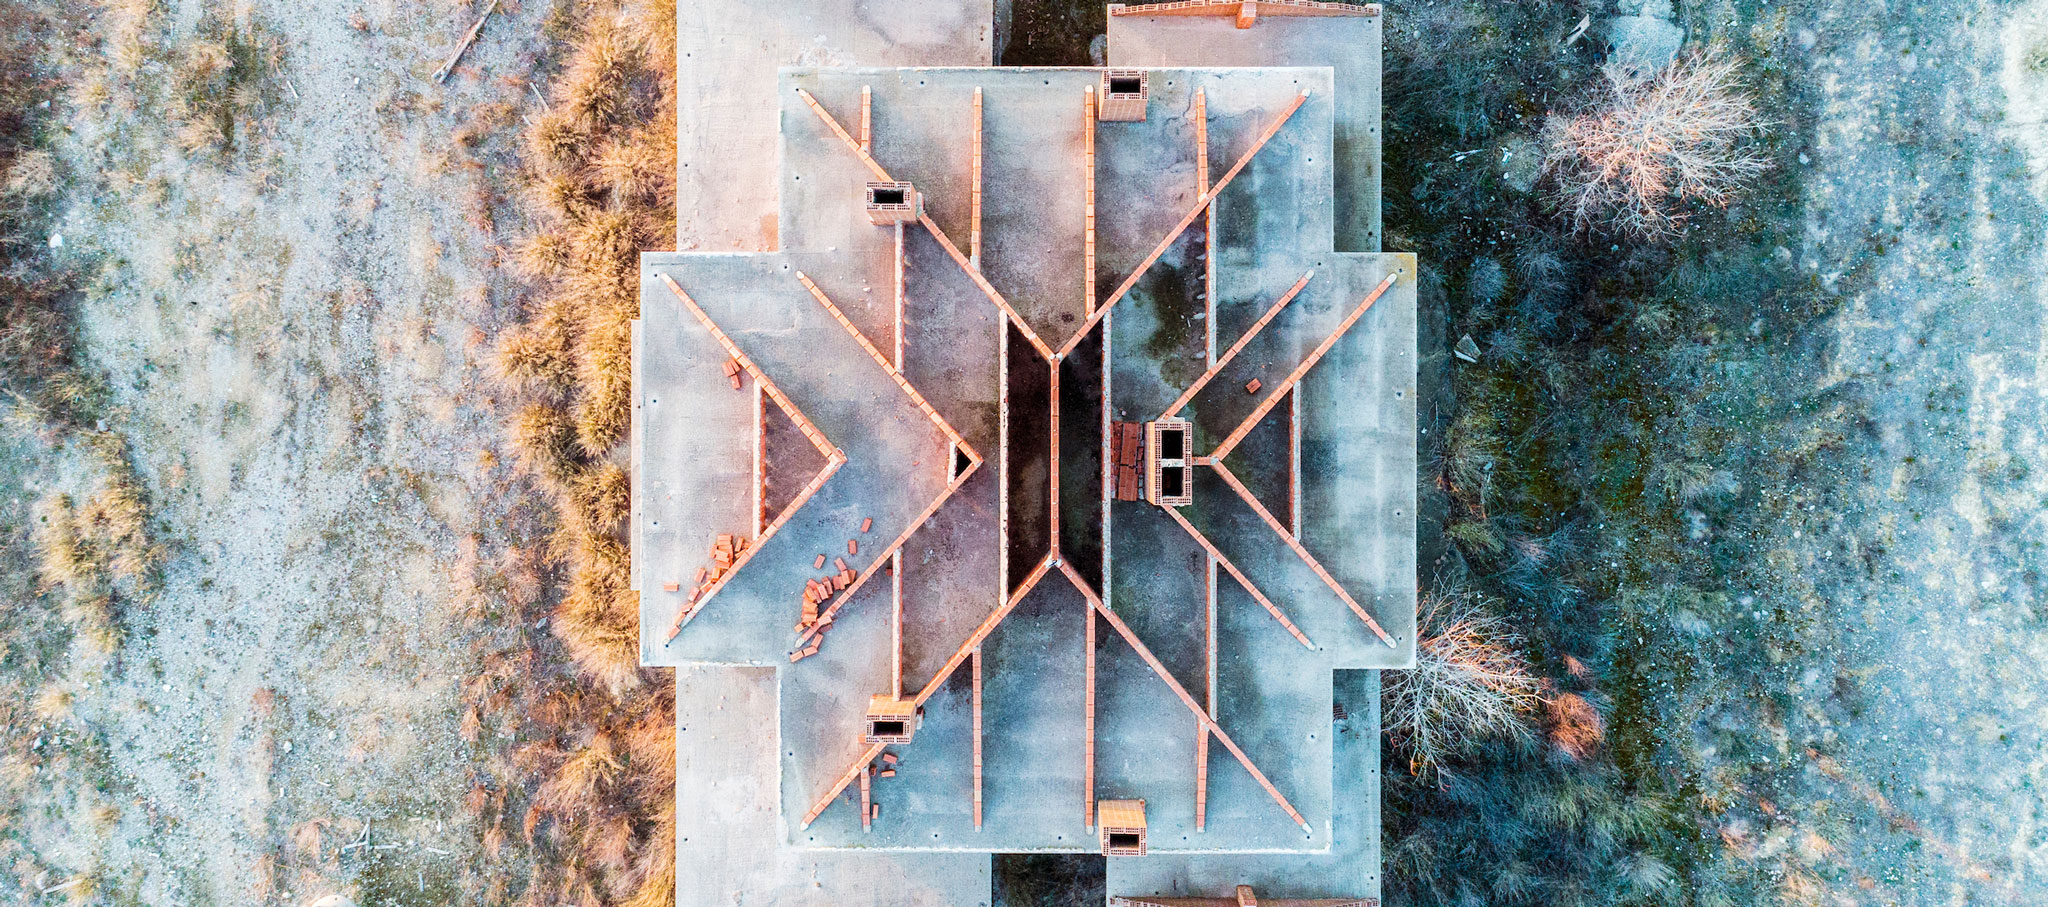 Sand Castles (part II). Winners of DJI Drone Photography Award. Spain's abandoned houses and the European salt ponds. Photograph © Markel Redondo